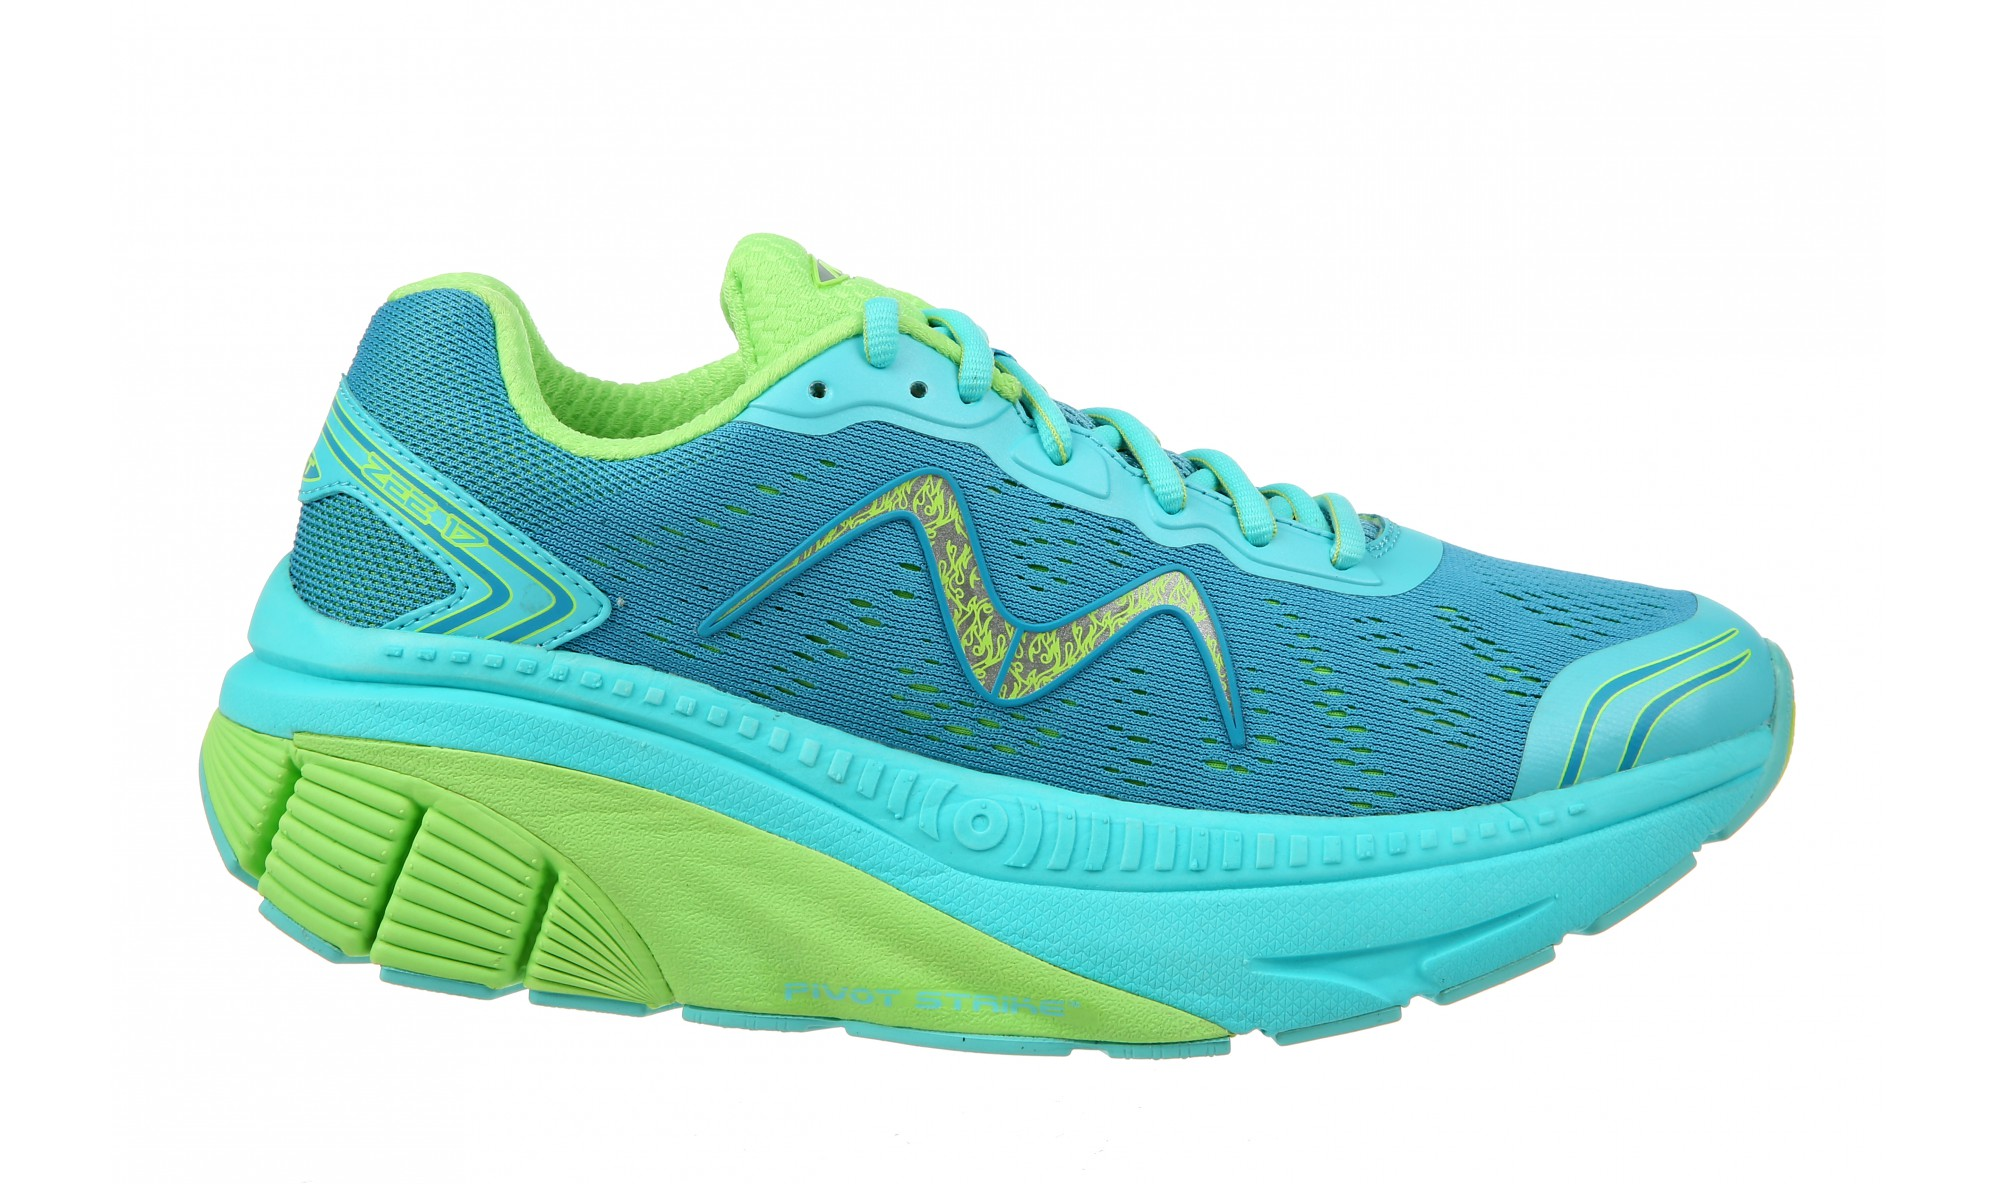 MBT Zee 17 Women's Teal / Green